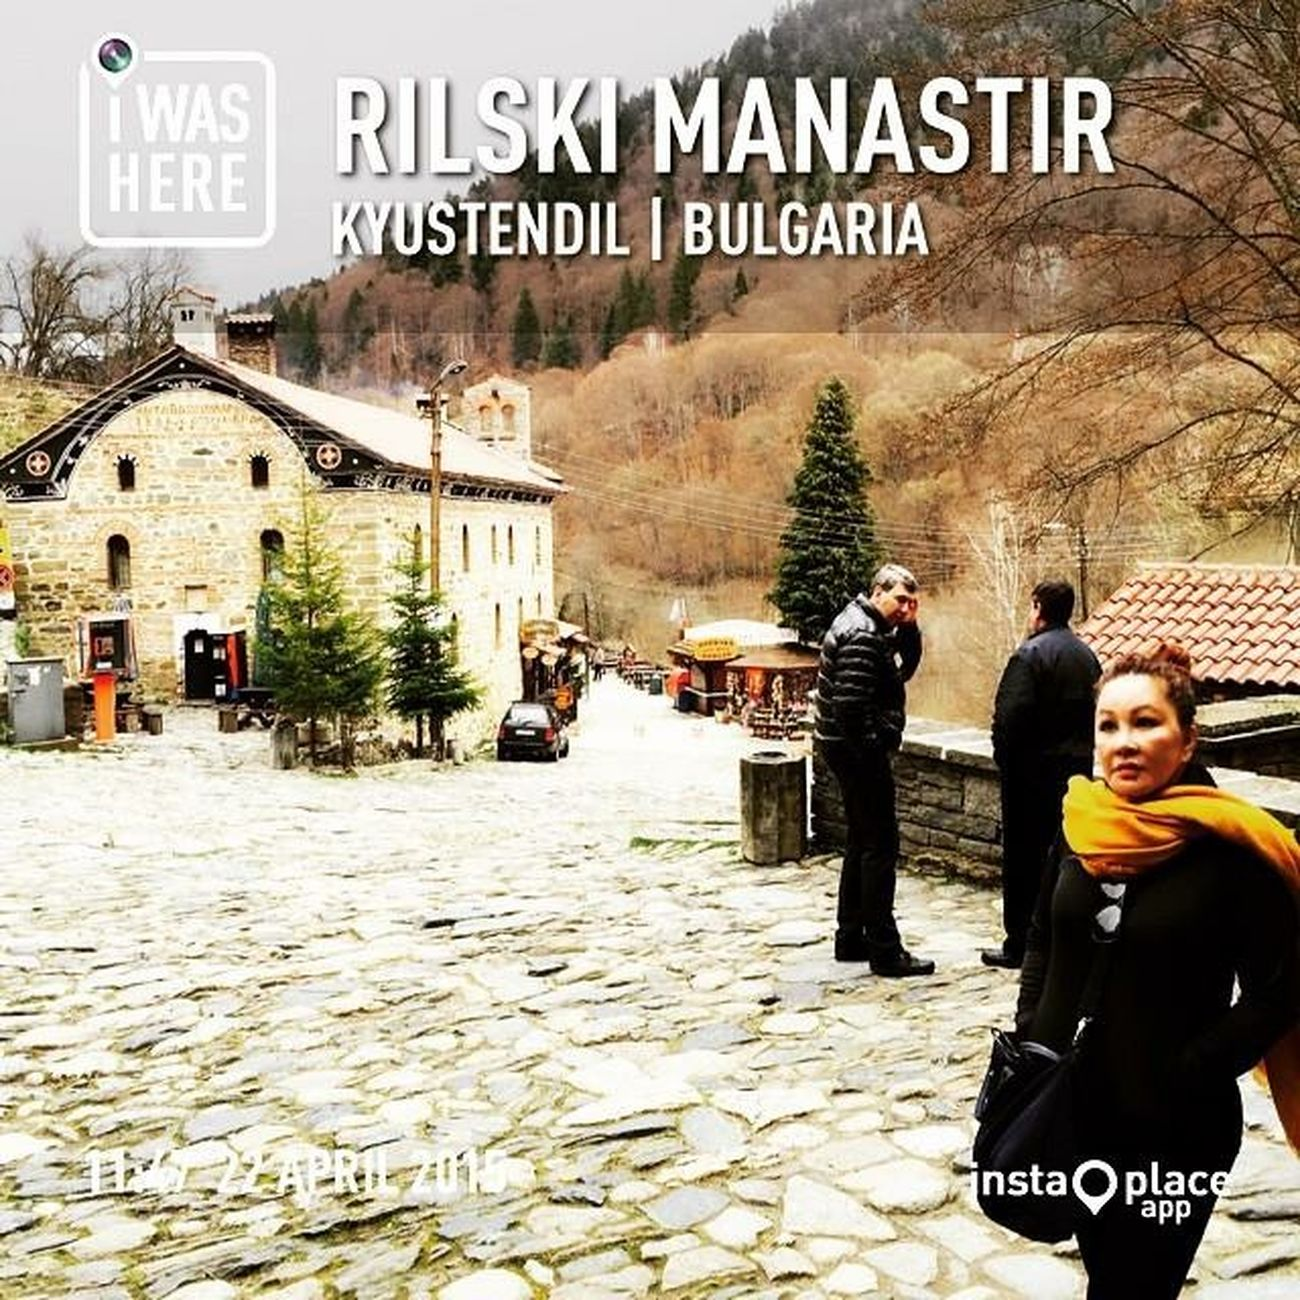 My Bulgaria Travel Series : Rilakkuma Rila Monastery Historical Monuments Taking Photos Eye Em Around The World Travel Photography For My Own Photo Journal Enjoying Every Moment Solotraveler By Myself Lizara ❤️ - I've learned that people will forget what you said, people will forget what you did but people will never forget how you made them feel ❤️❤️👌✨✨💋✈️